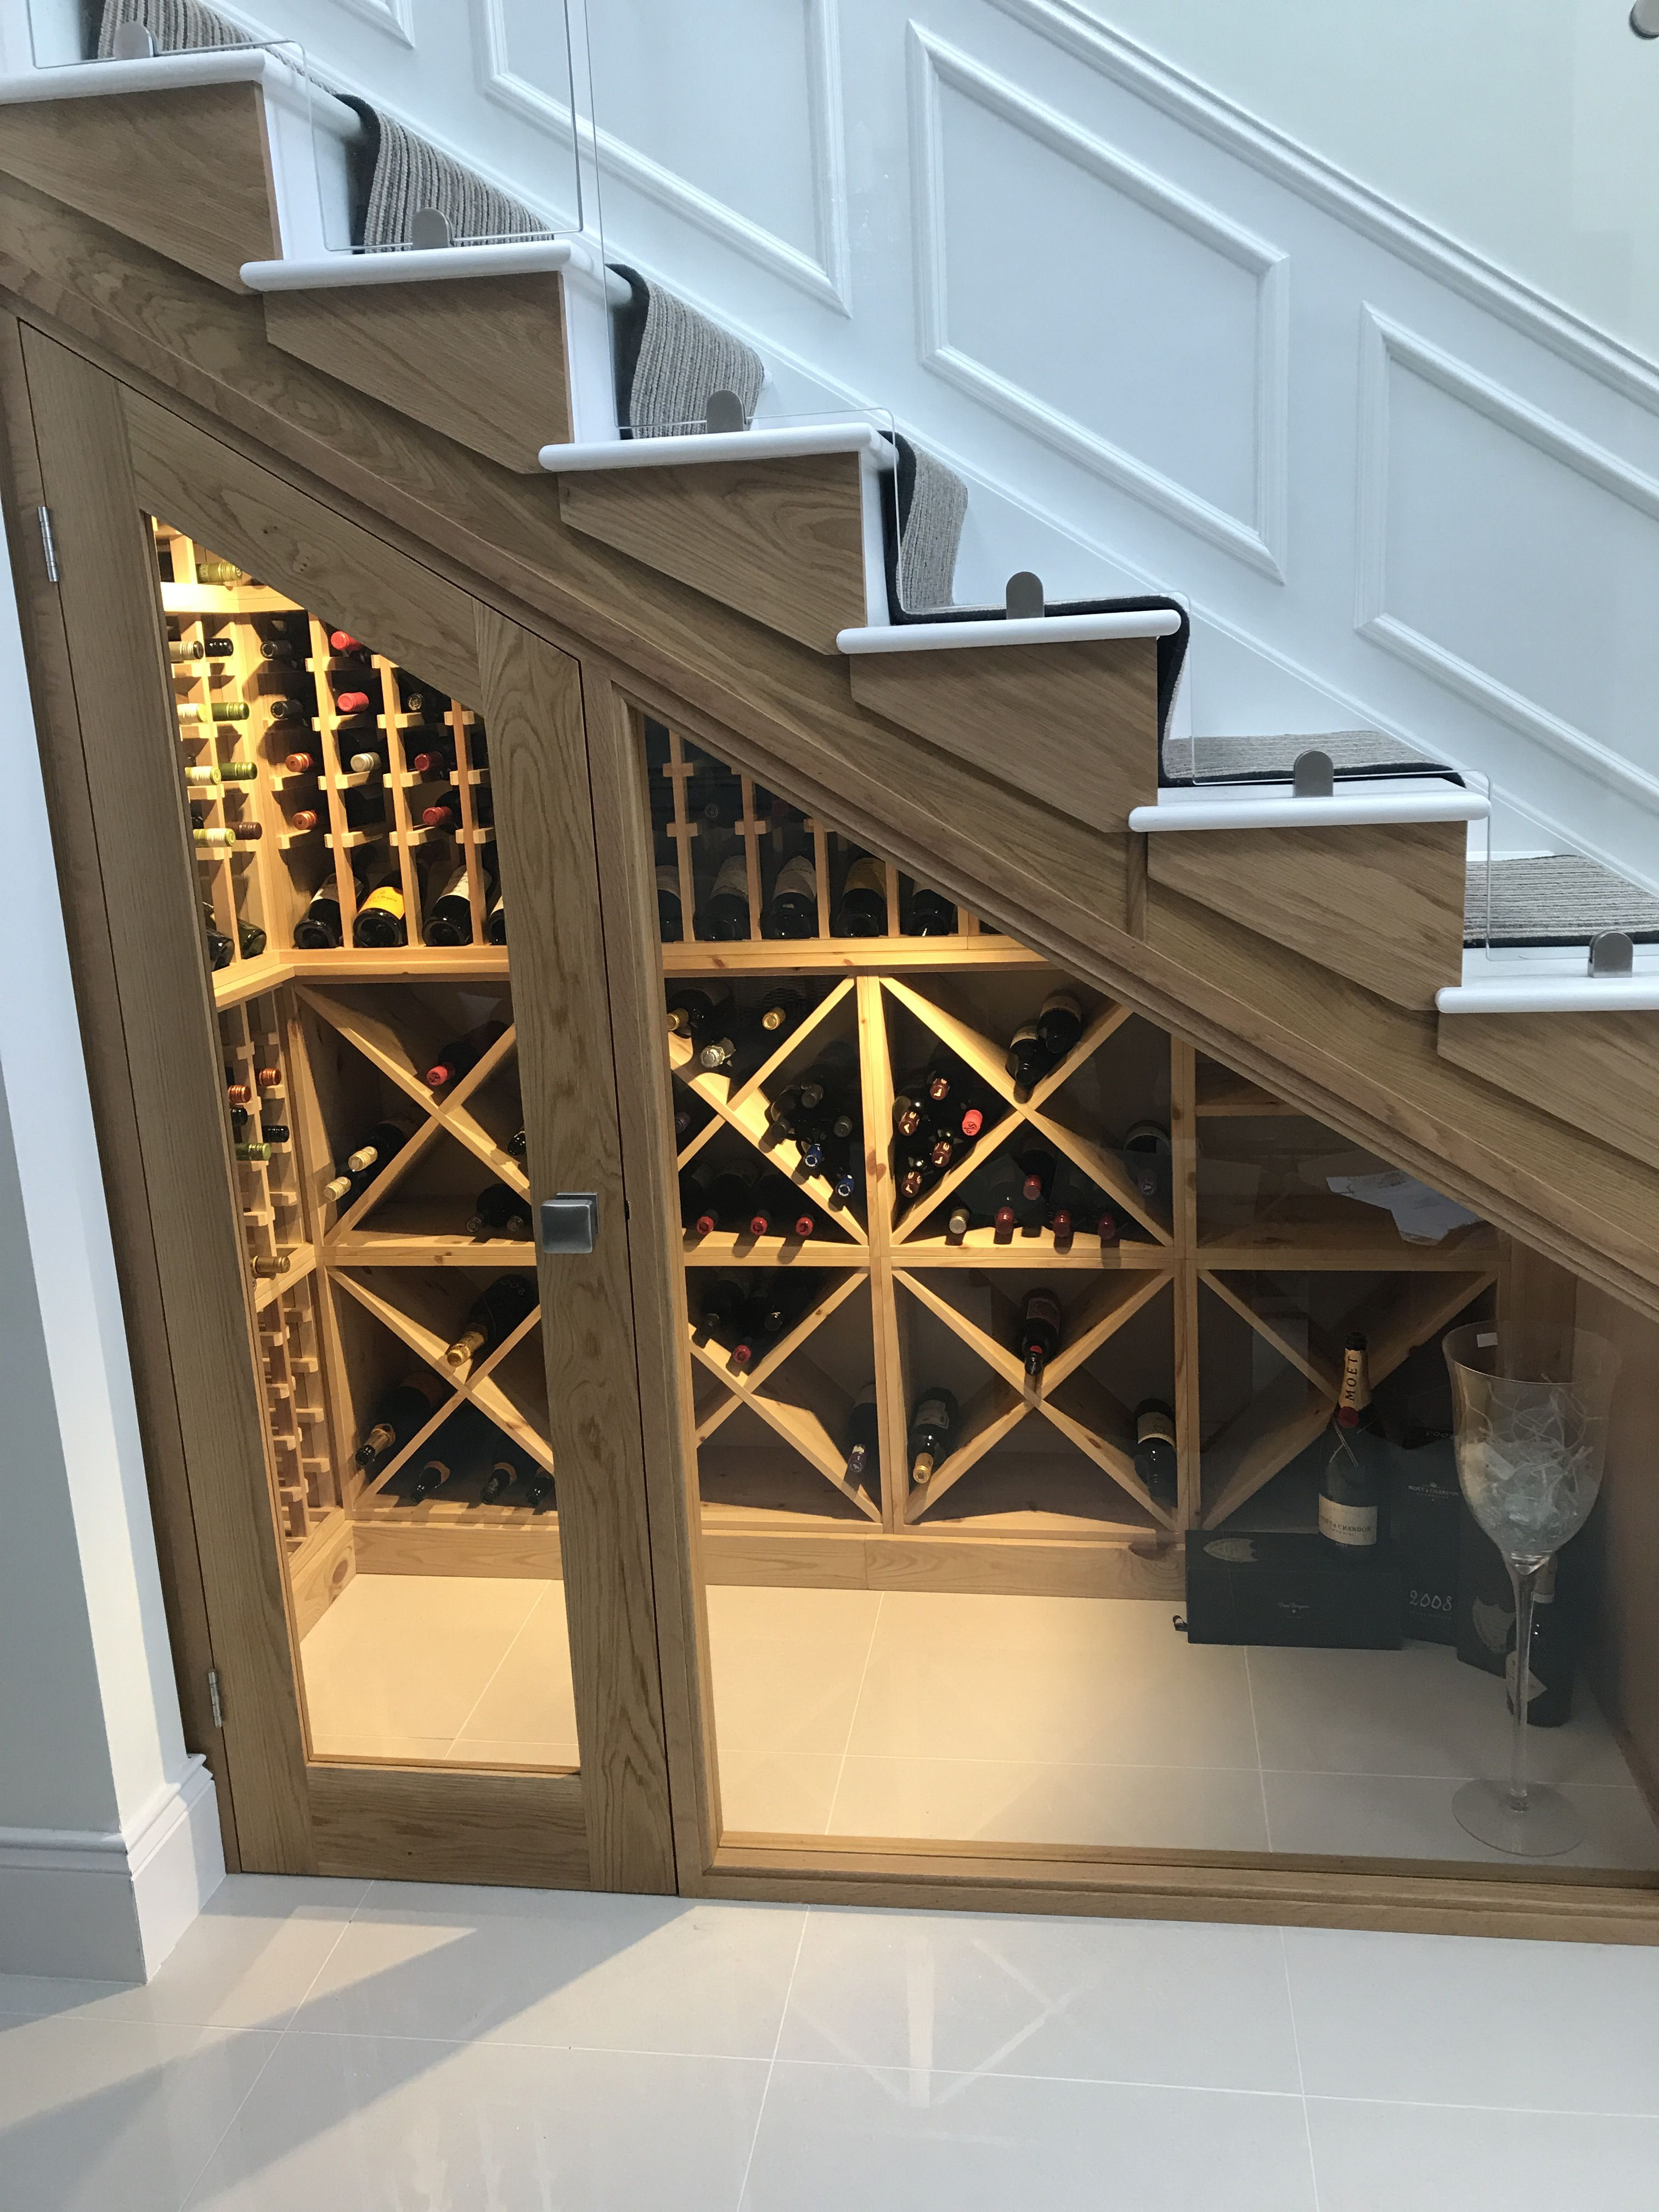 Bespoke wine racking for under stairs wine storage perfect for any home redesign or makeover